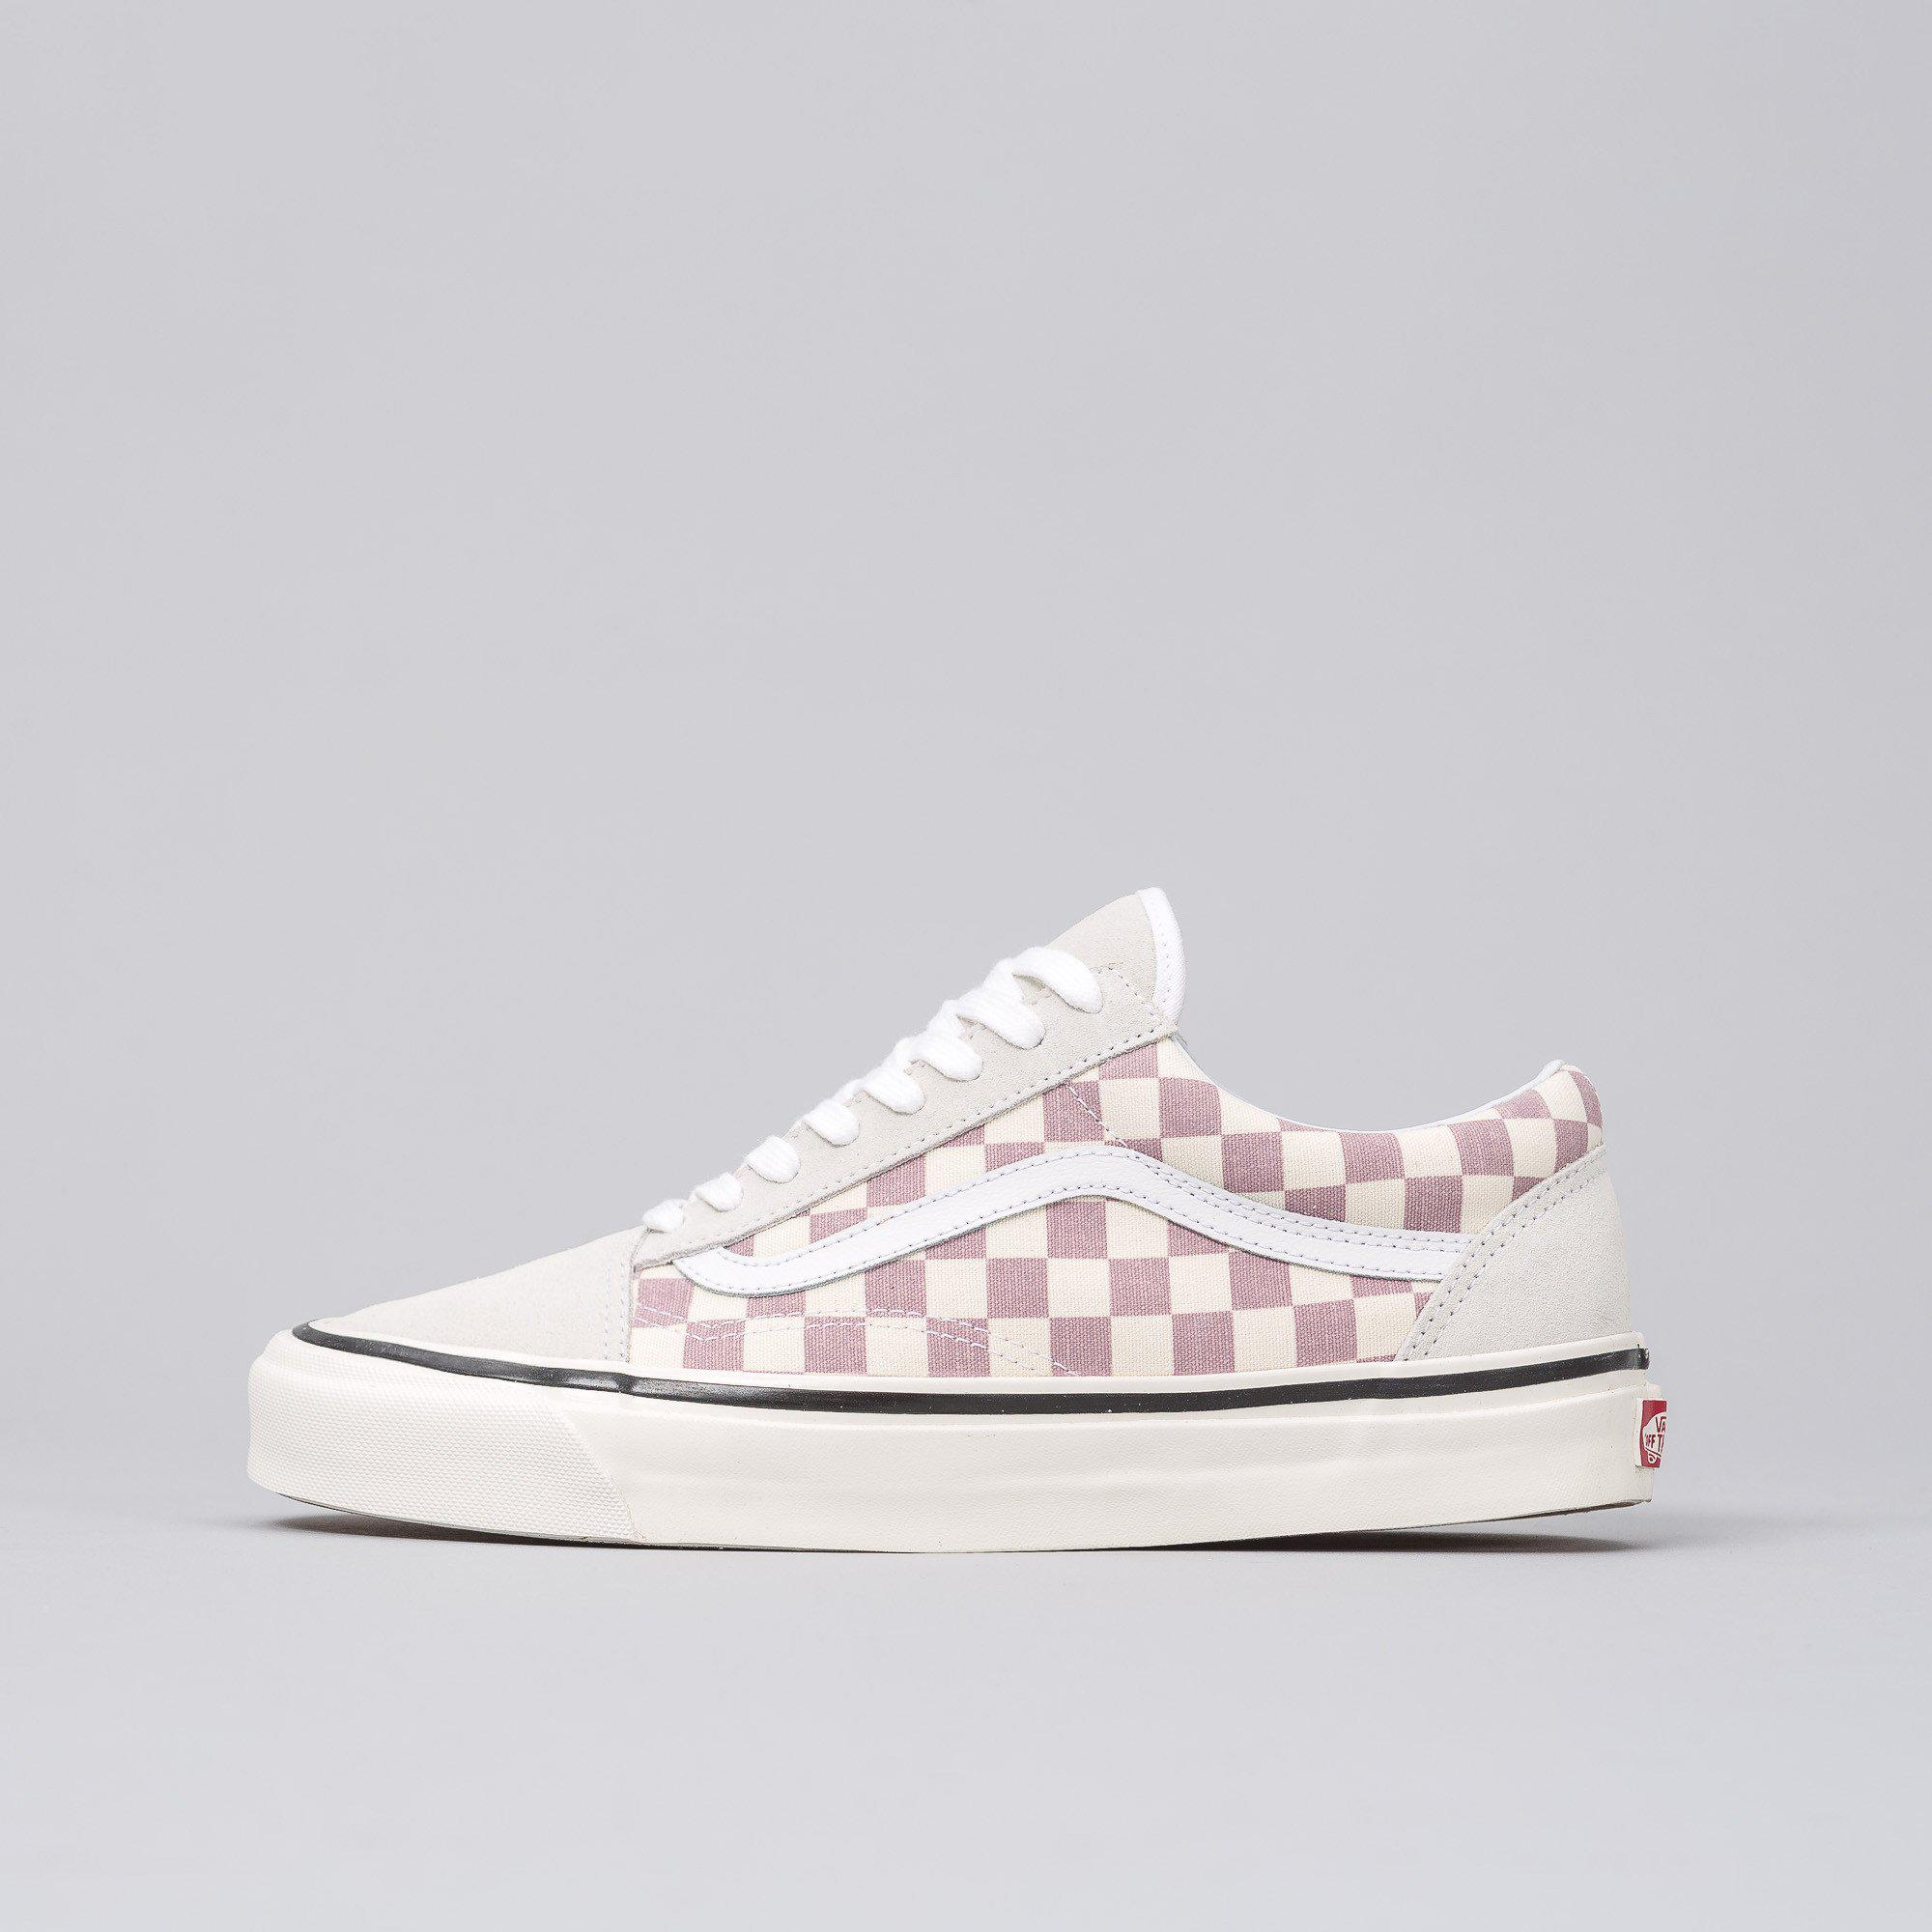 vans anaheim factory old skool 36 dx checkerboard sneaker